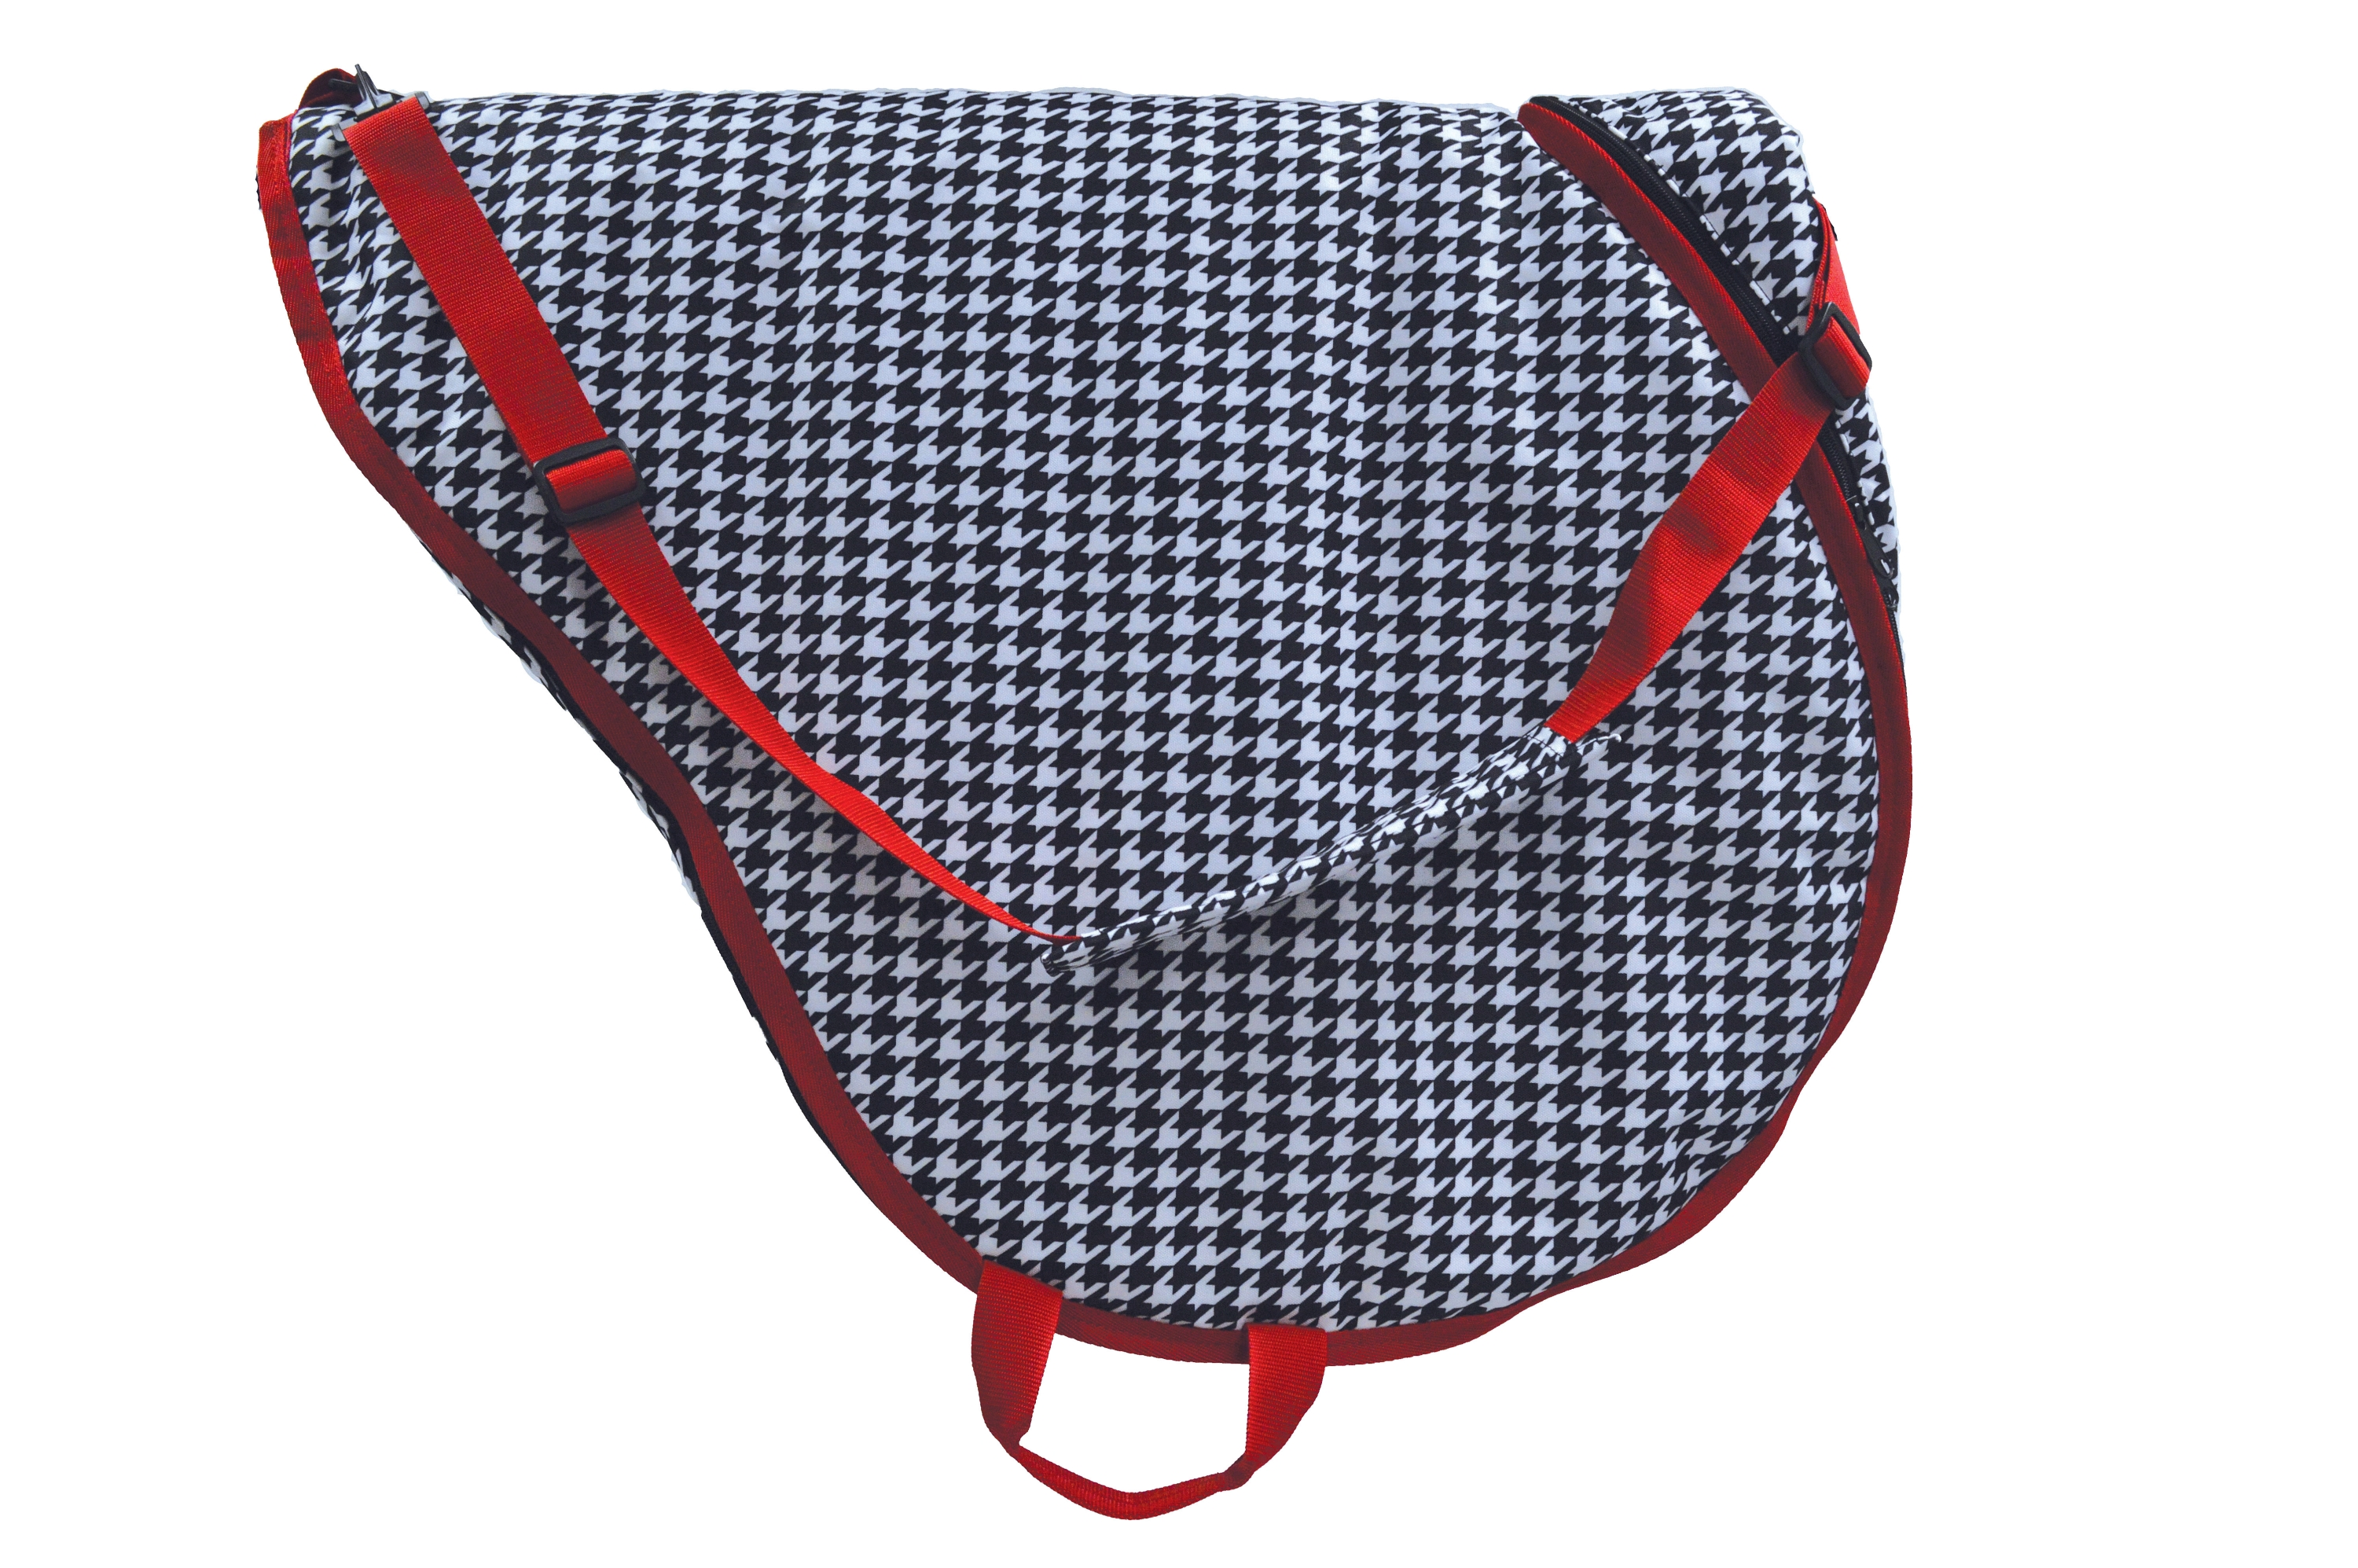 Lami-Cell Houndstooth English Saddle Case